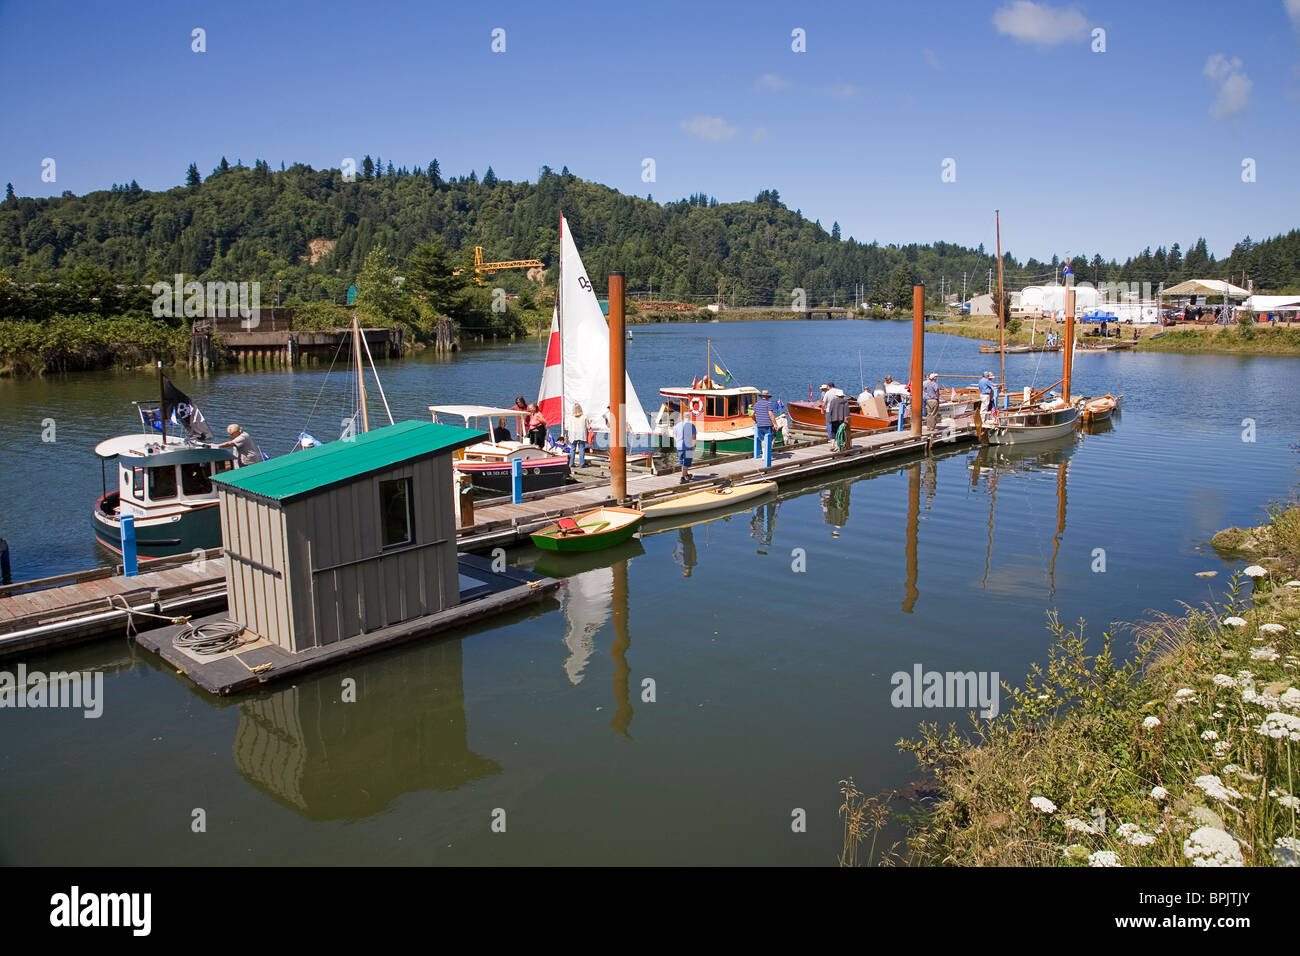 Wooden boats on the Yaquina River at an annual Wooden Boat show in Toledo, Oregon - Stock Image